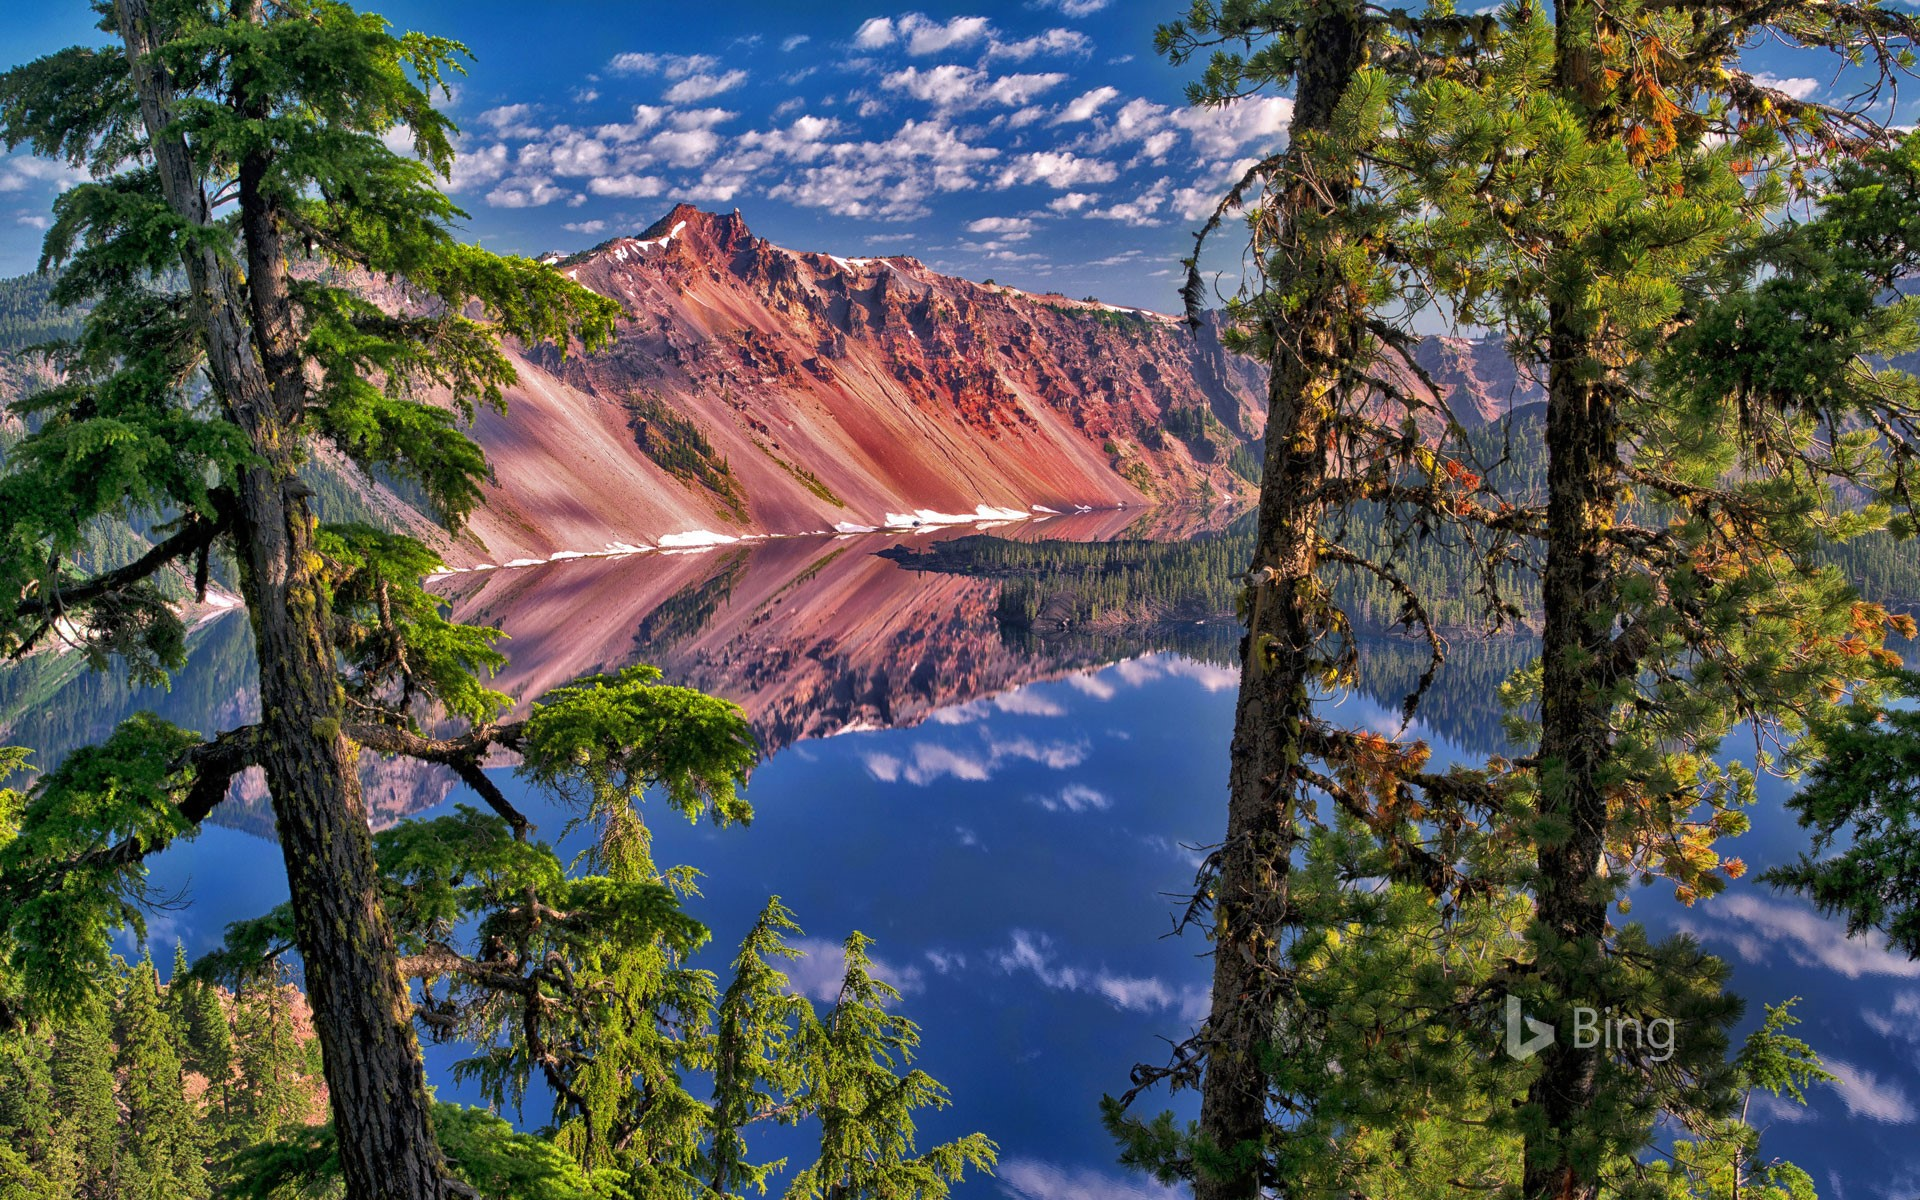 The Watchman Peak in Crater Lake National Park, Oregon